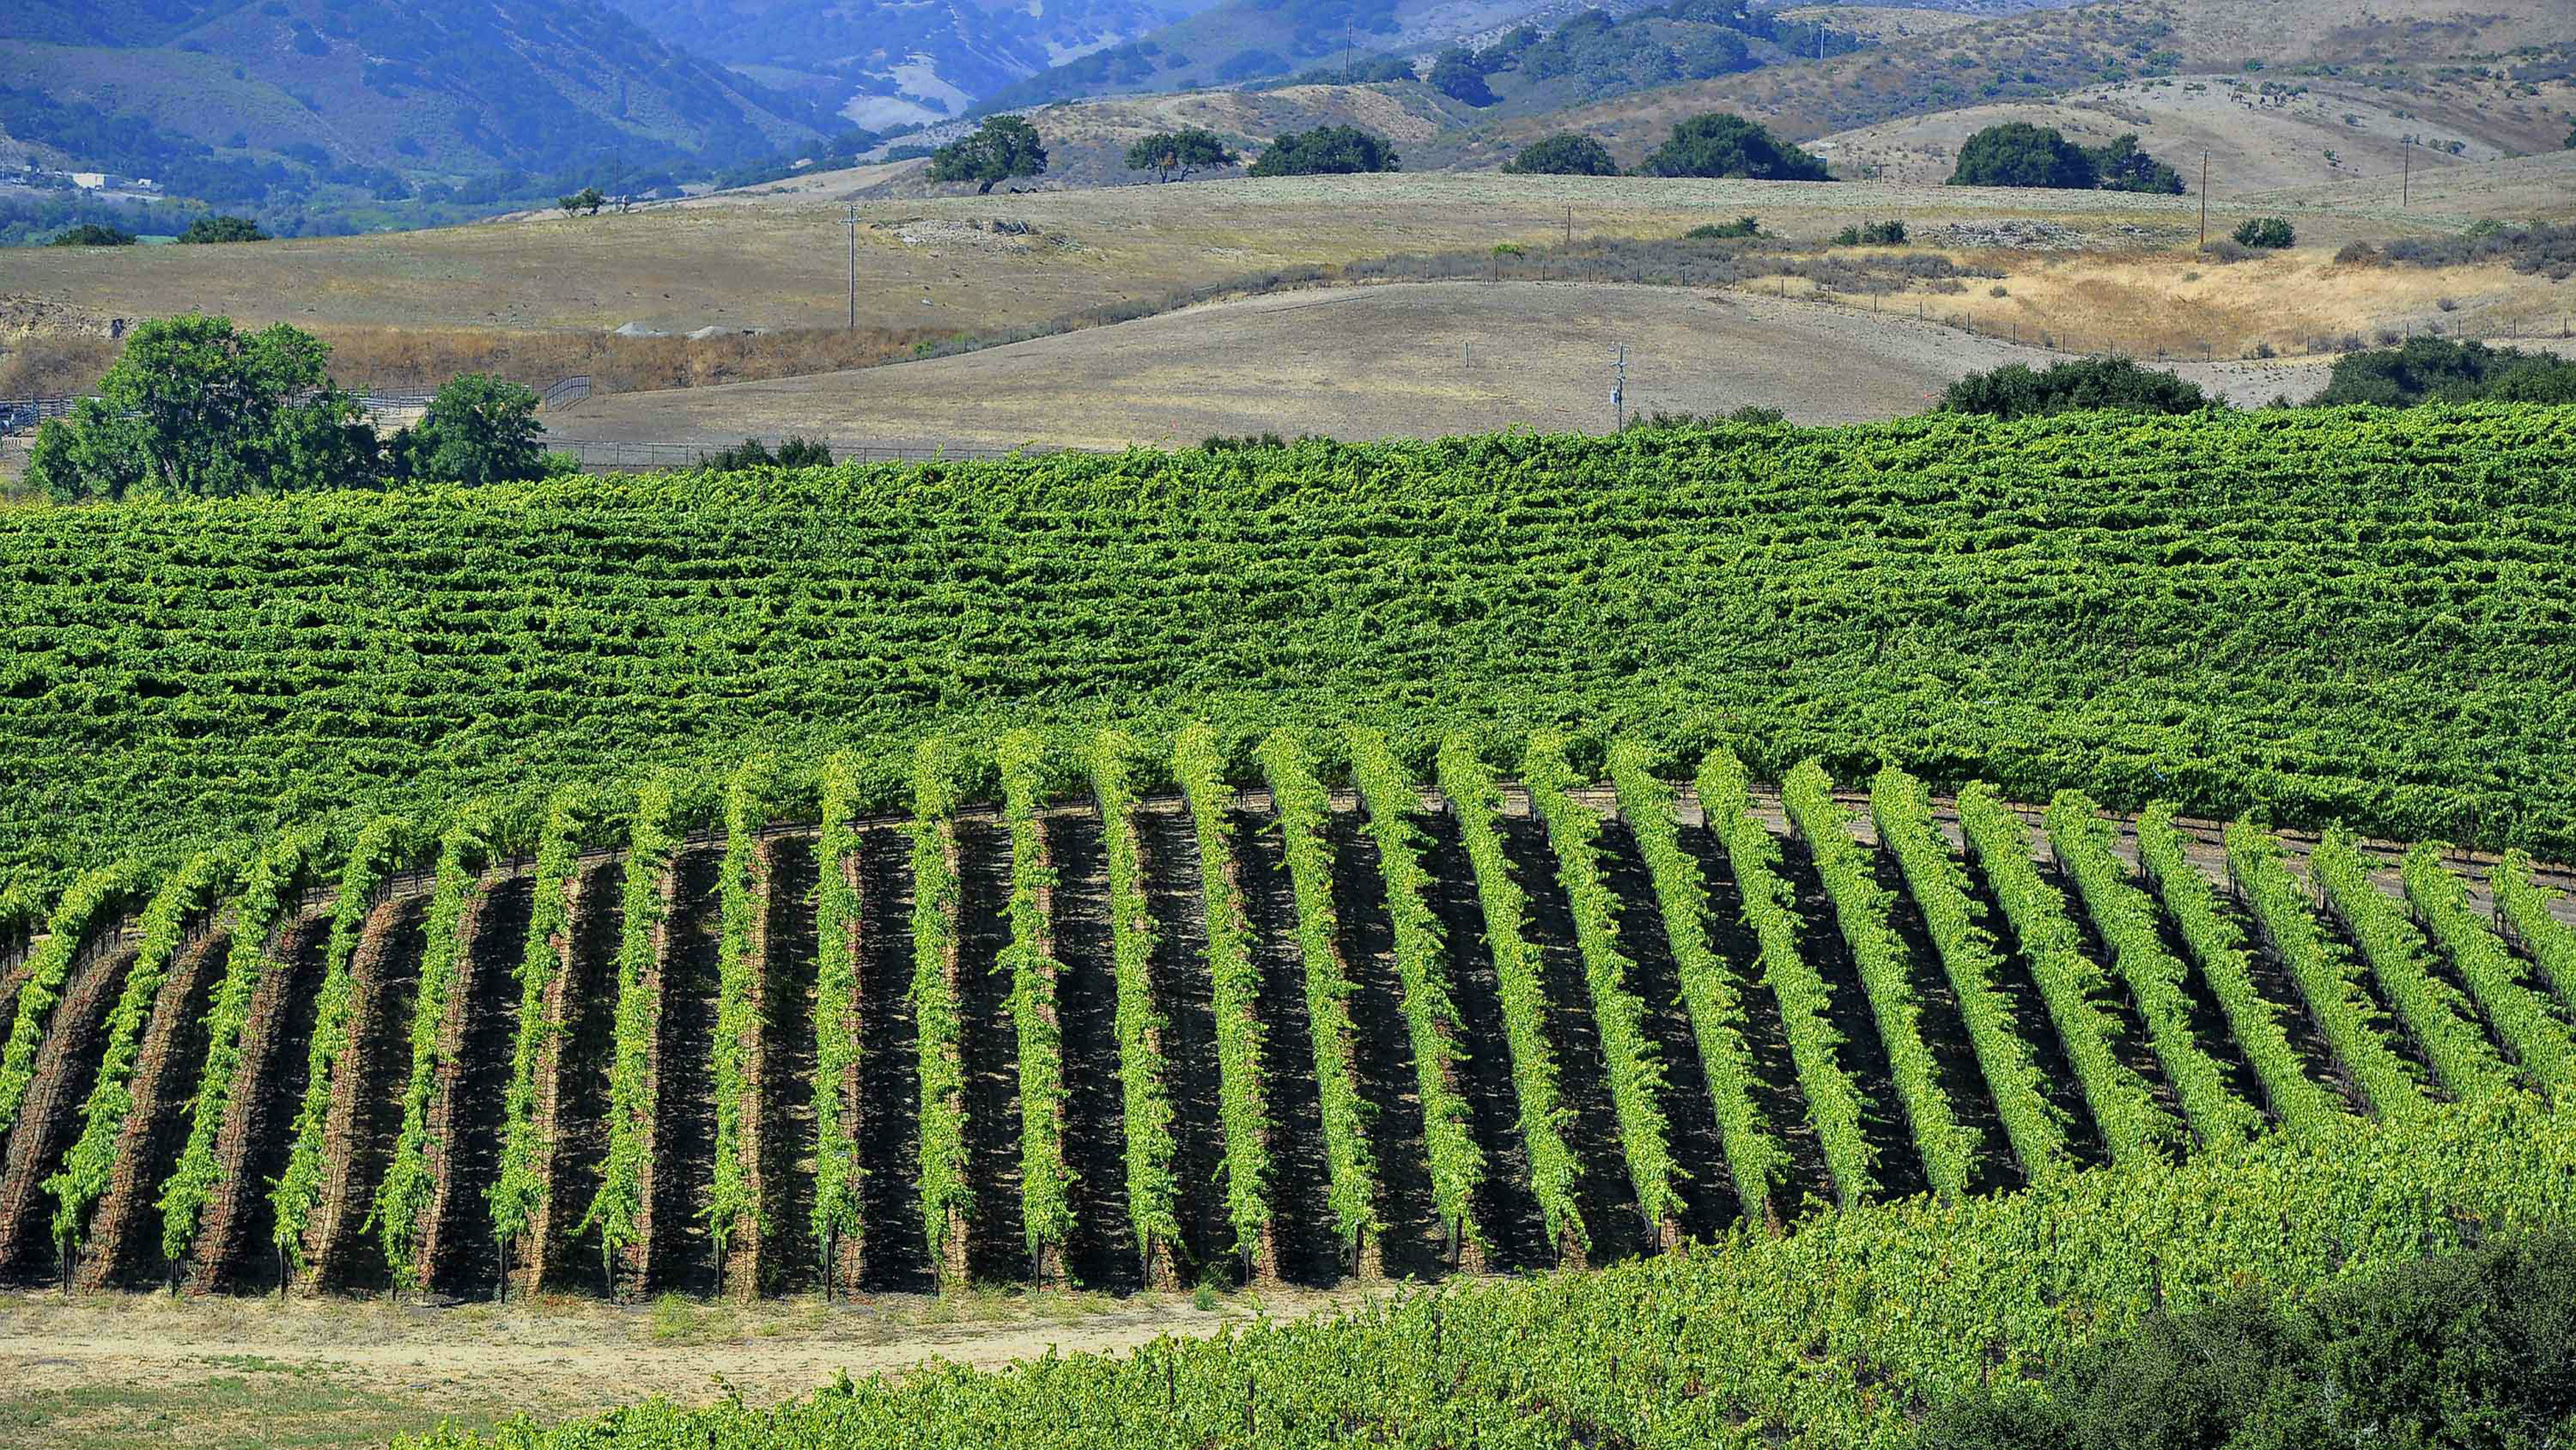 View of vineyard of Rebecca and Peter Work owners of the Ampelos Cellars winery and vineyard in California.